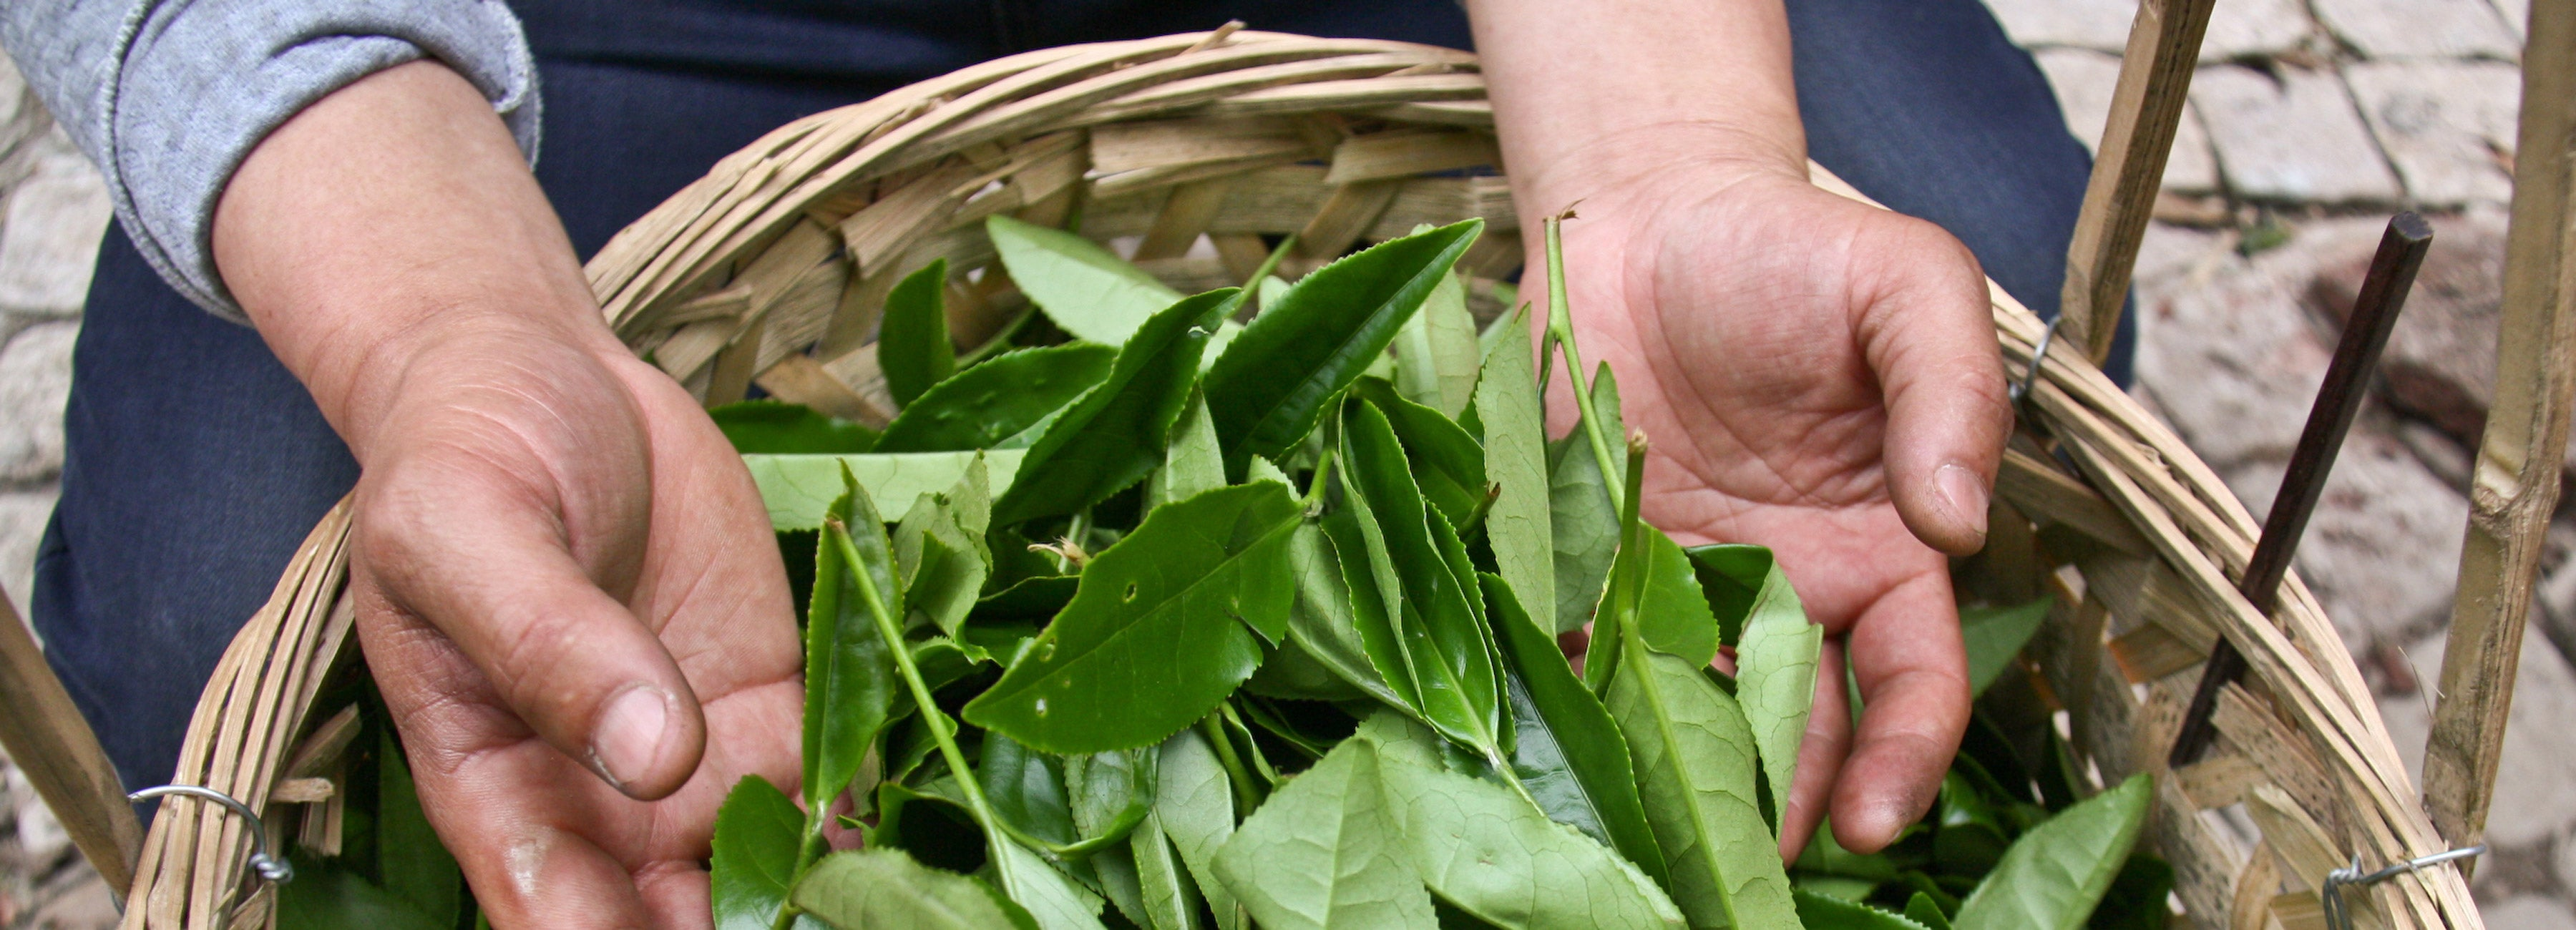 How is Tea Made - All about the Process